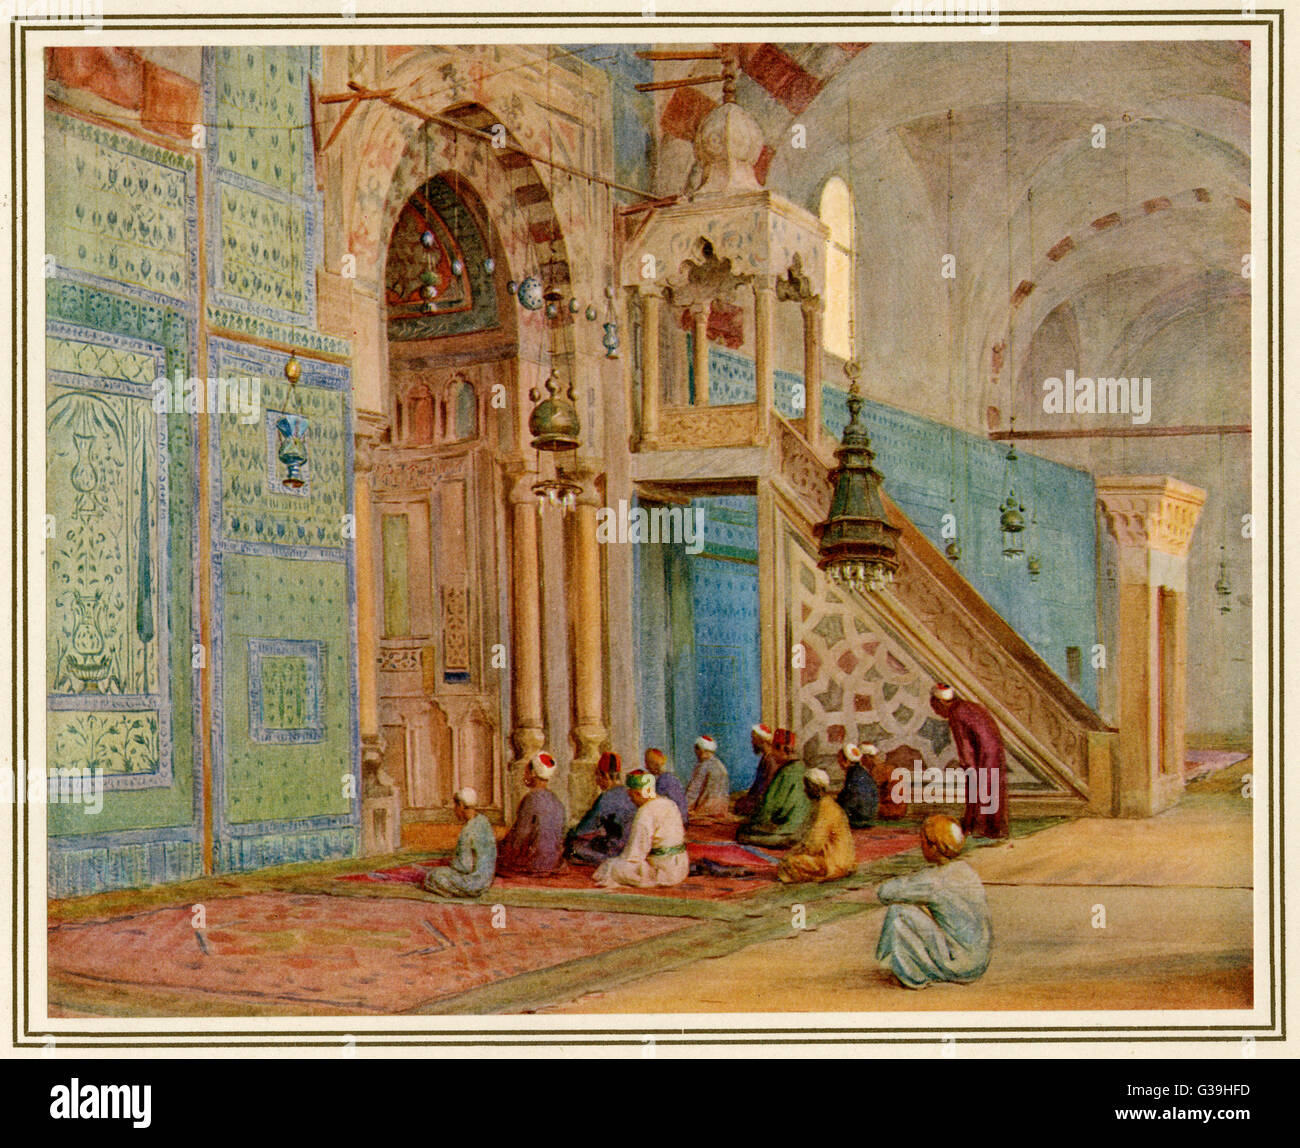 Moslems at prayer in the Blue  Mosque, Cairo (Egypt)         Date: 1912 - Stock Image